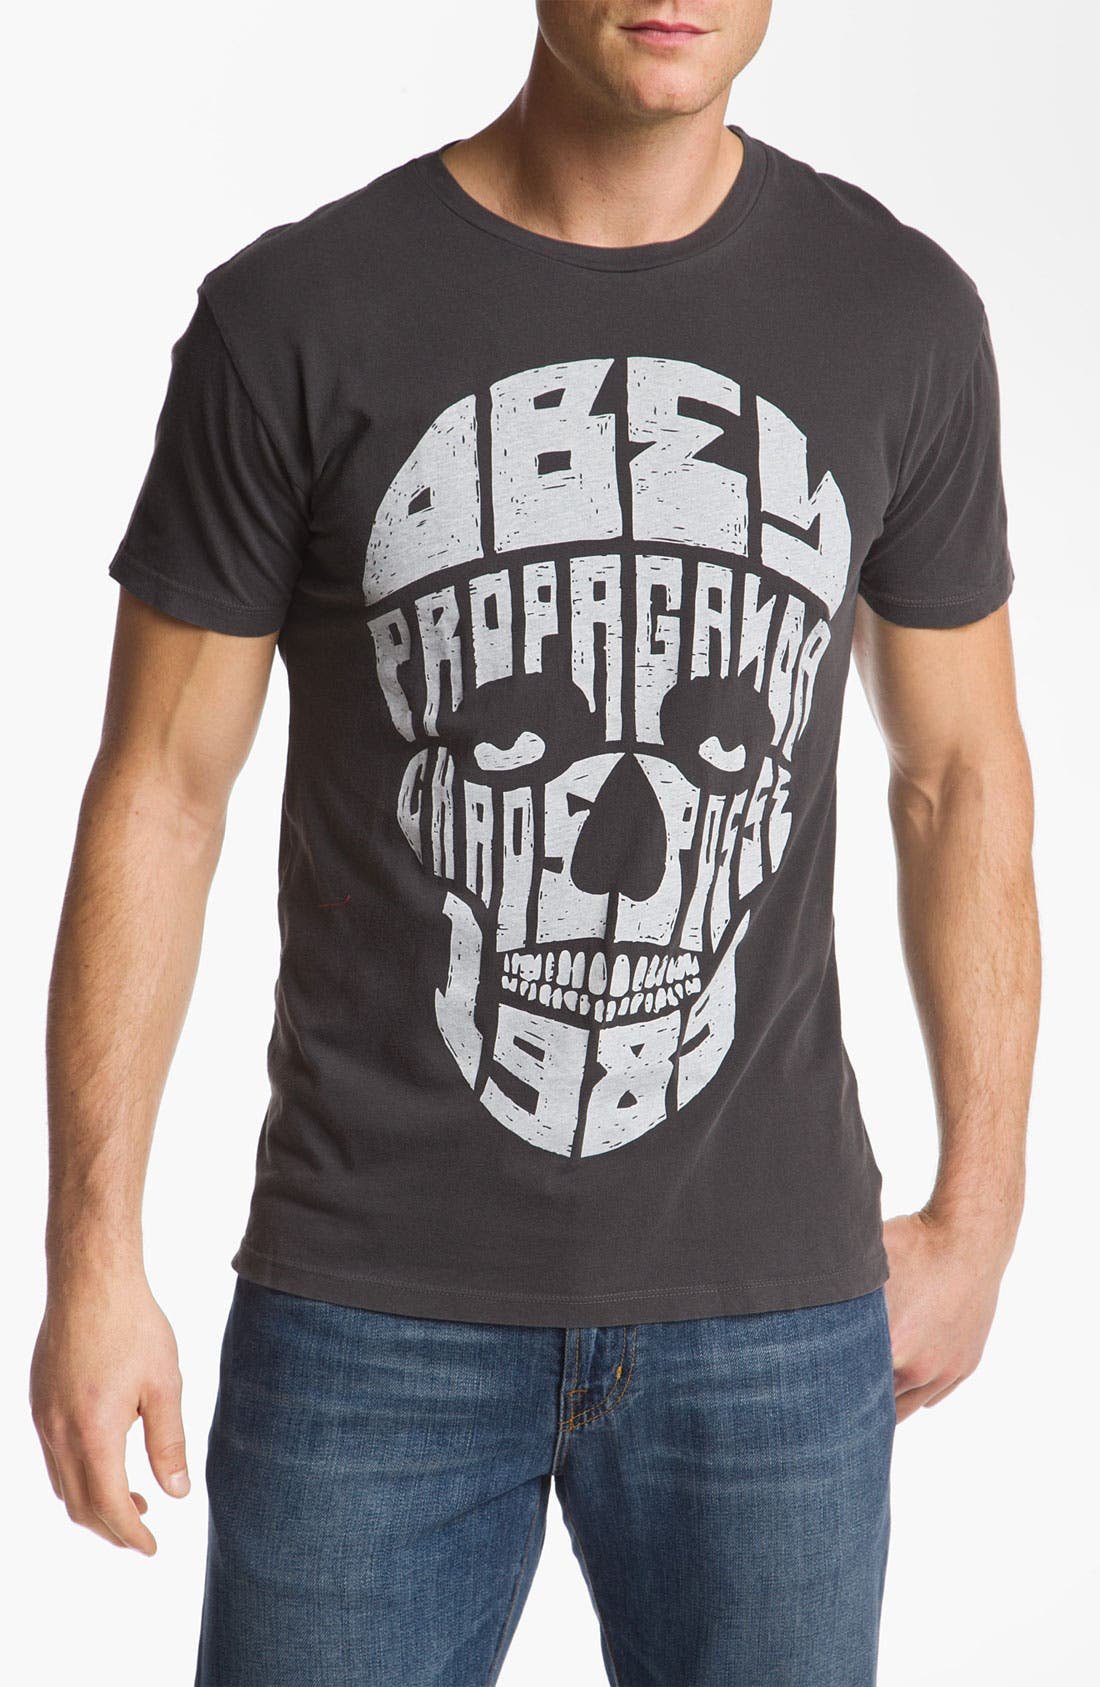 Main Image - Obey 'Chaos Posse' Graphic T-Shirt